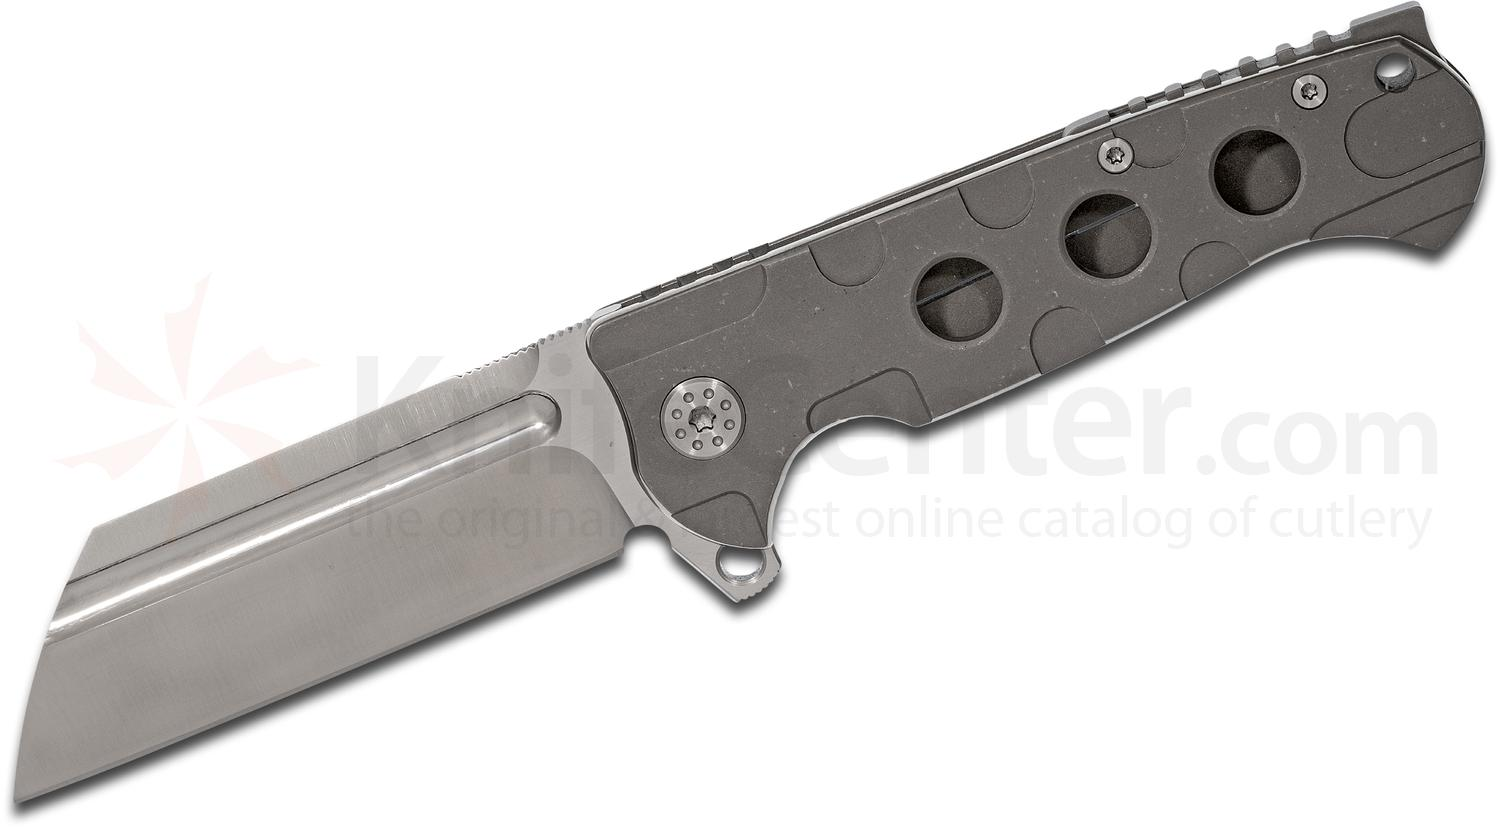 Andre De Villiers Knives Classic Butcher #22 Flipper 4 inch S35VN Wharncliffe Satin Blade, Stonewashed Milled Titanium Handles